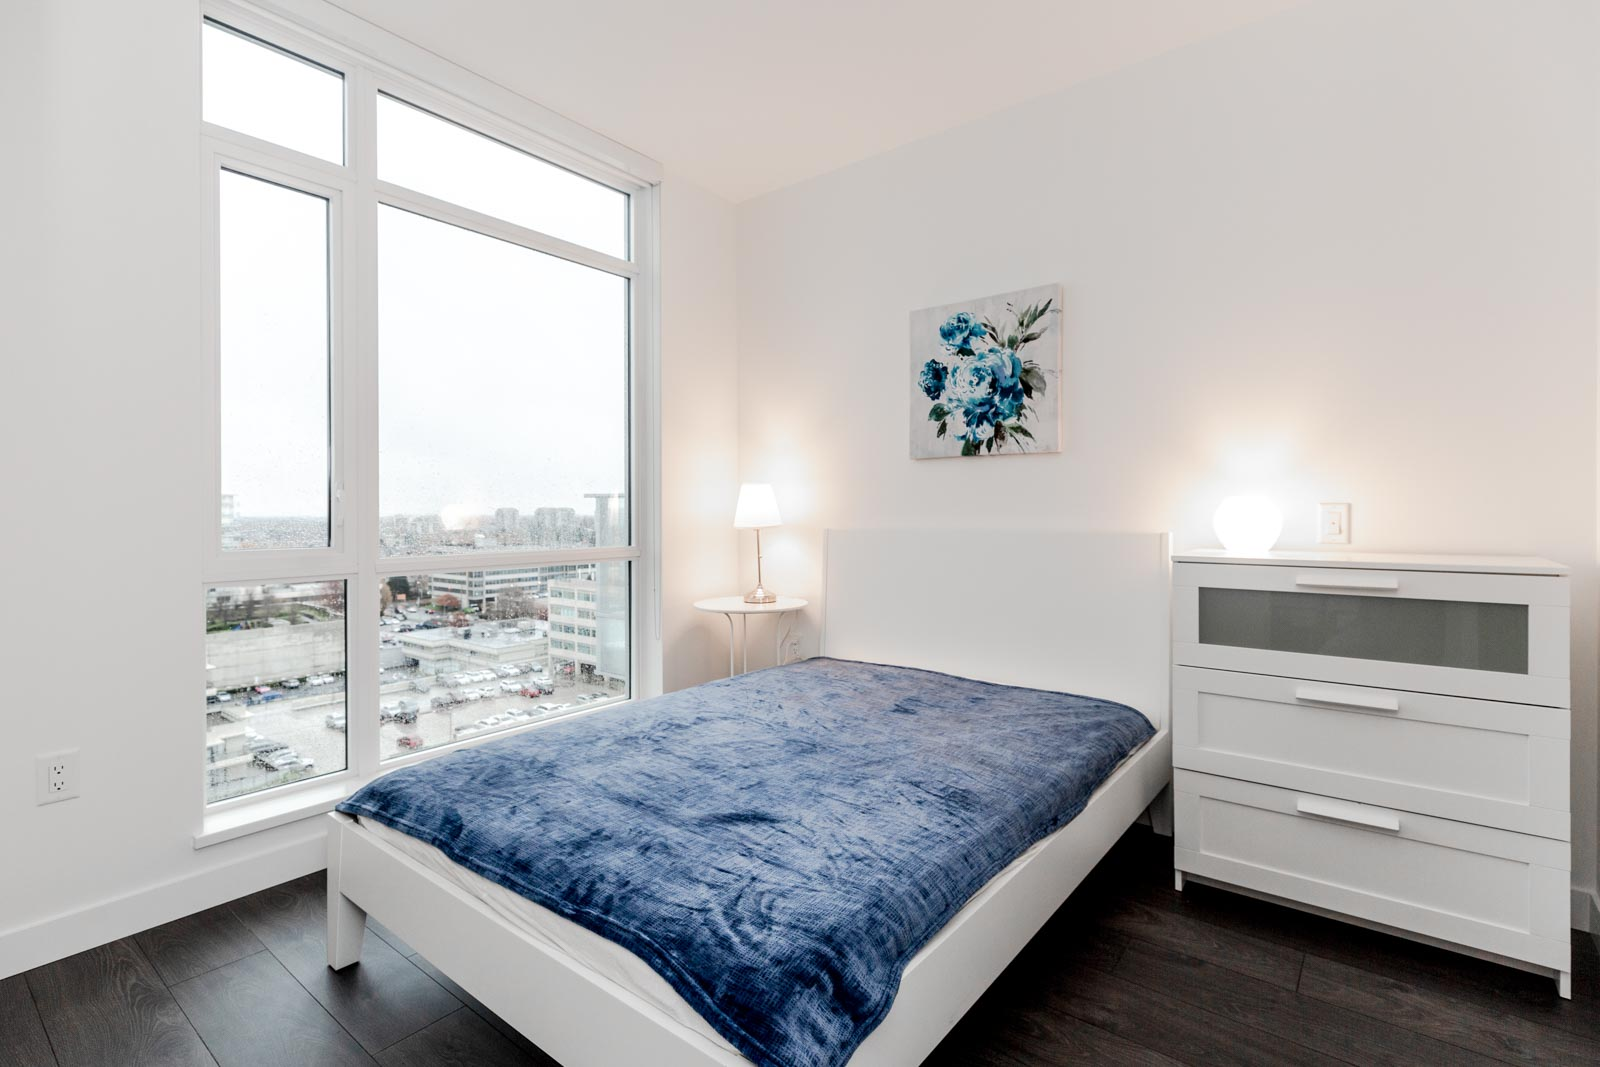 Blue Velvet Bedspread at Richmond Condo For Rent